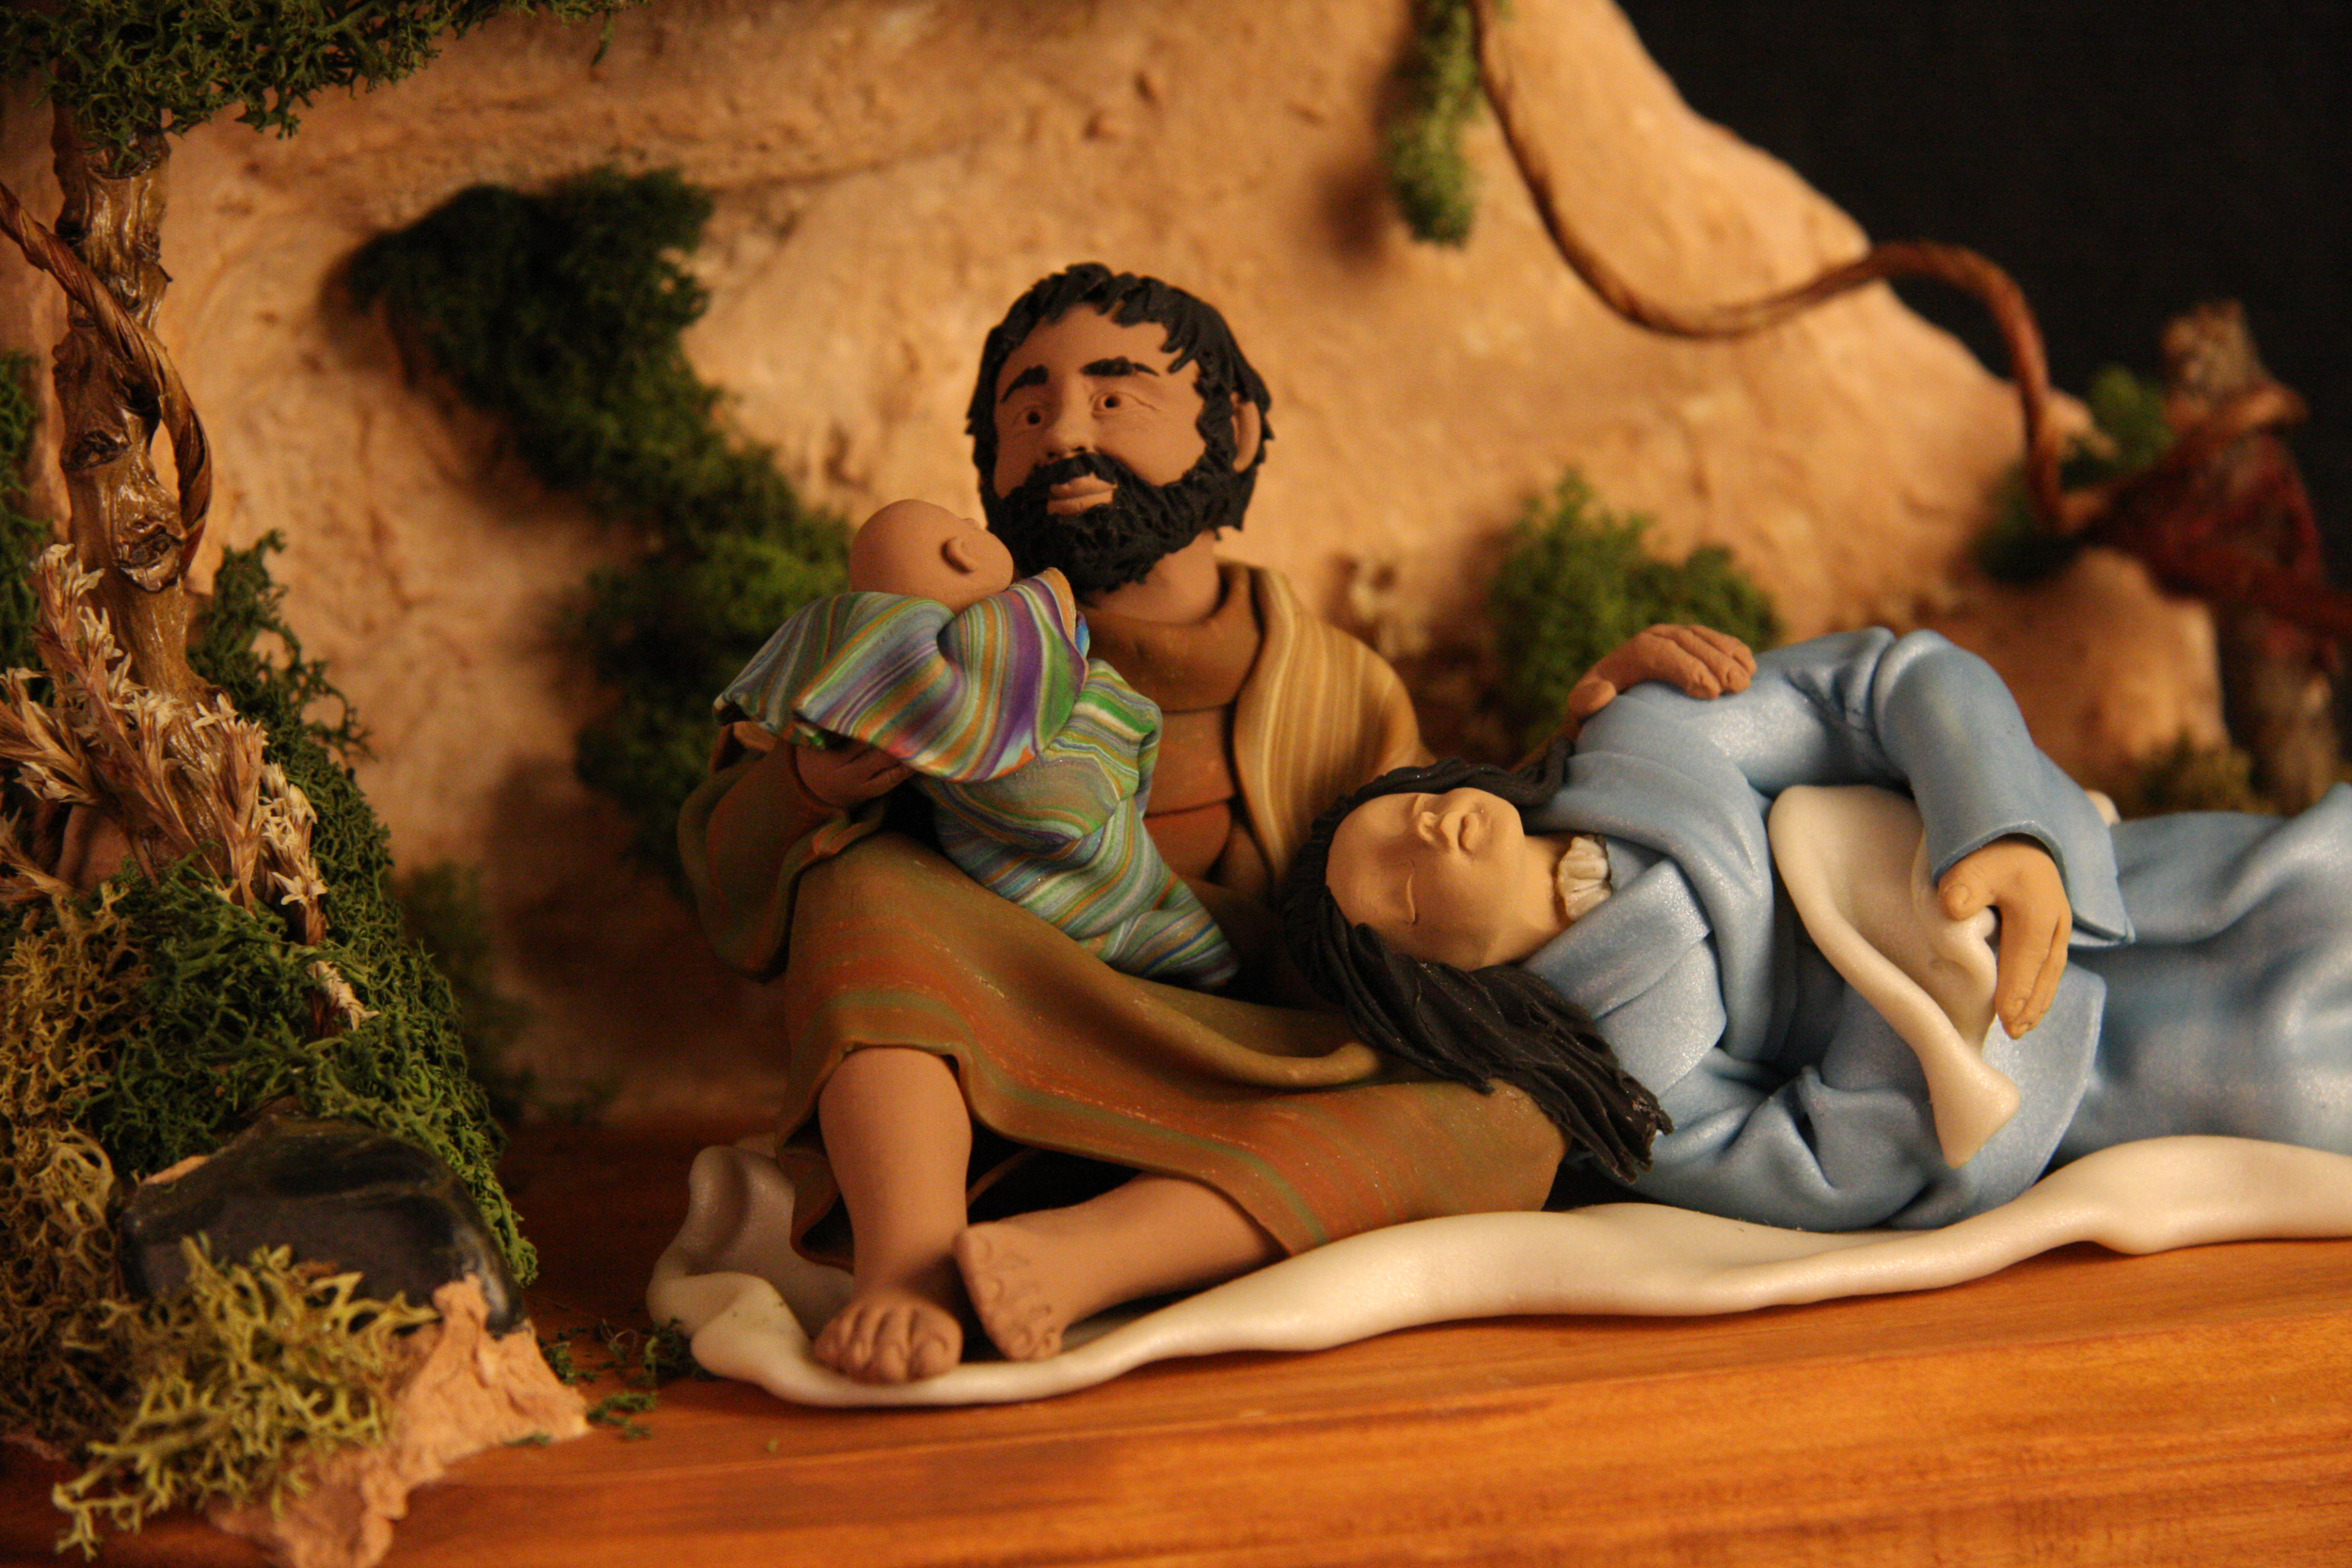 Nativity scene by Judy Gibson King, USA, 2007. Handmade from polymer clay, wood, and natural materials. King began making religious figures out of polymer clay as a form of private meditation and prayer, but her work has since become a full-time occupation. This Nativity has a contemporary feel; Mary lies asleep with her head in Joseph's lap while he holds the baby Jesus. Collection of Glencairn Museum, gift of Alan and Mary Liz Pomeroy.